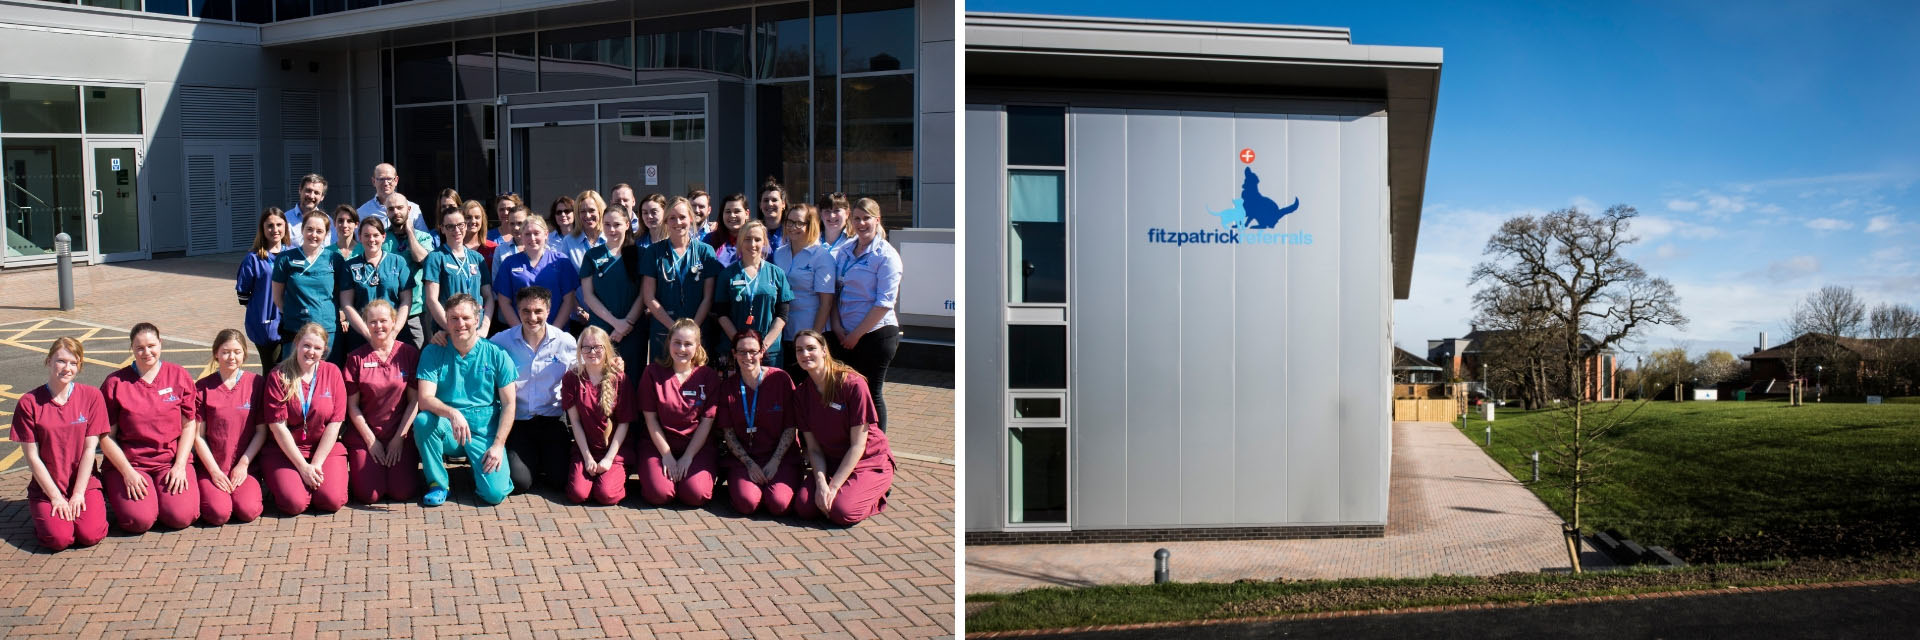 Fitzpatrick Referrals Oncology & Soft Tissue team photo and hospital exterior